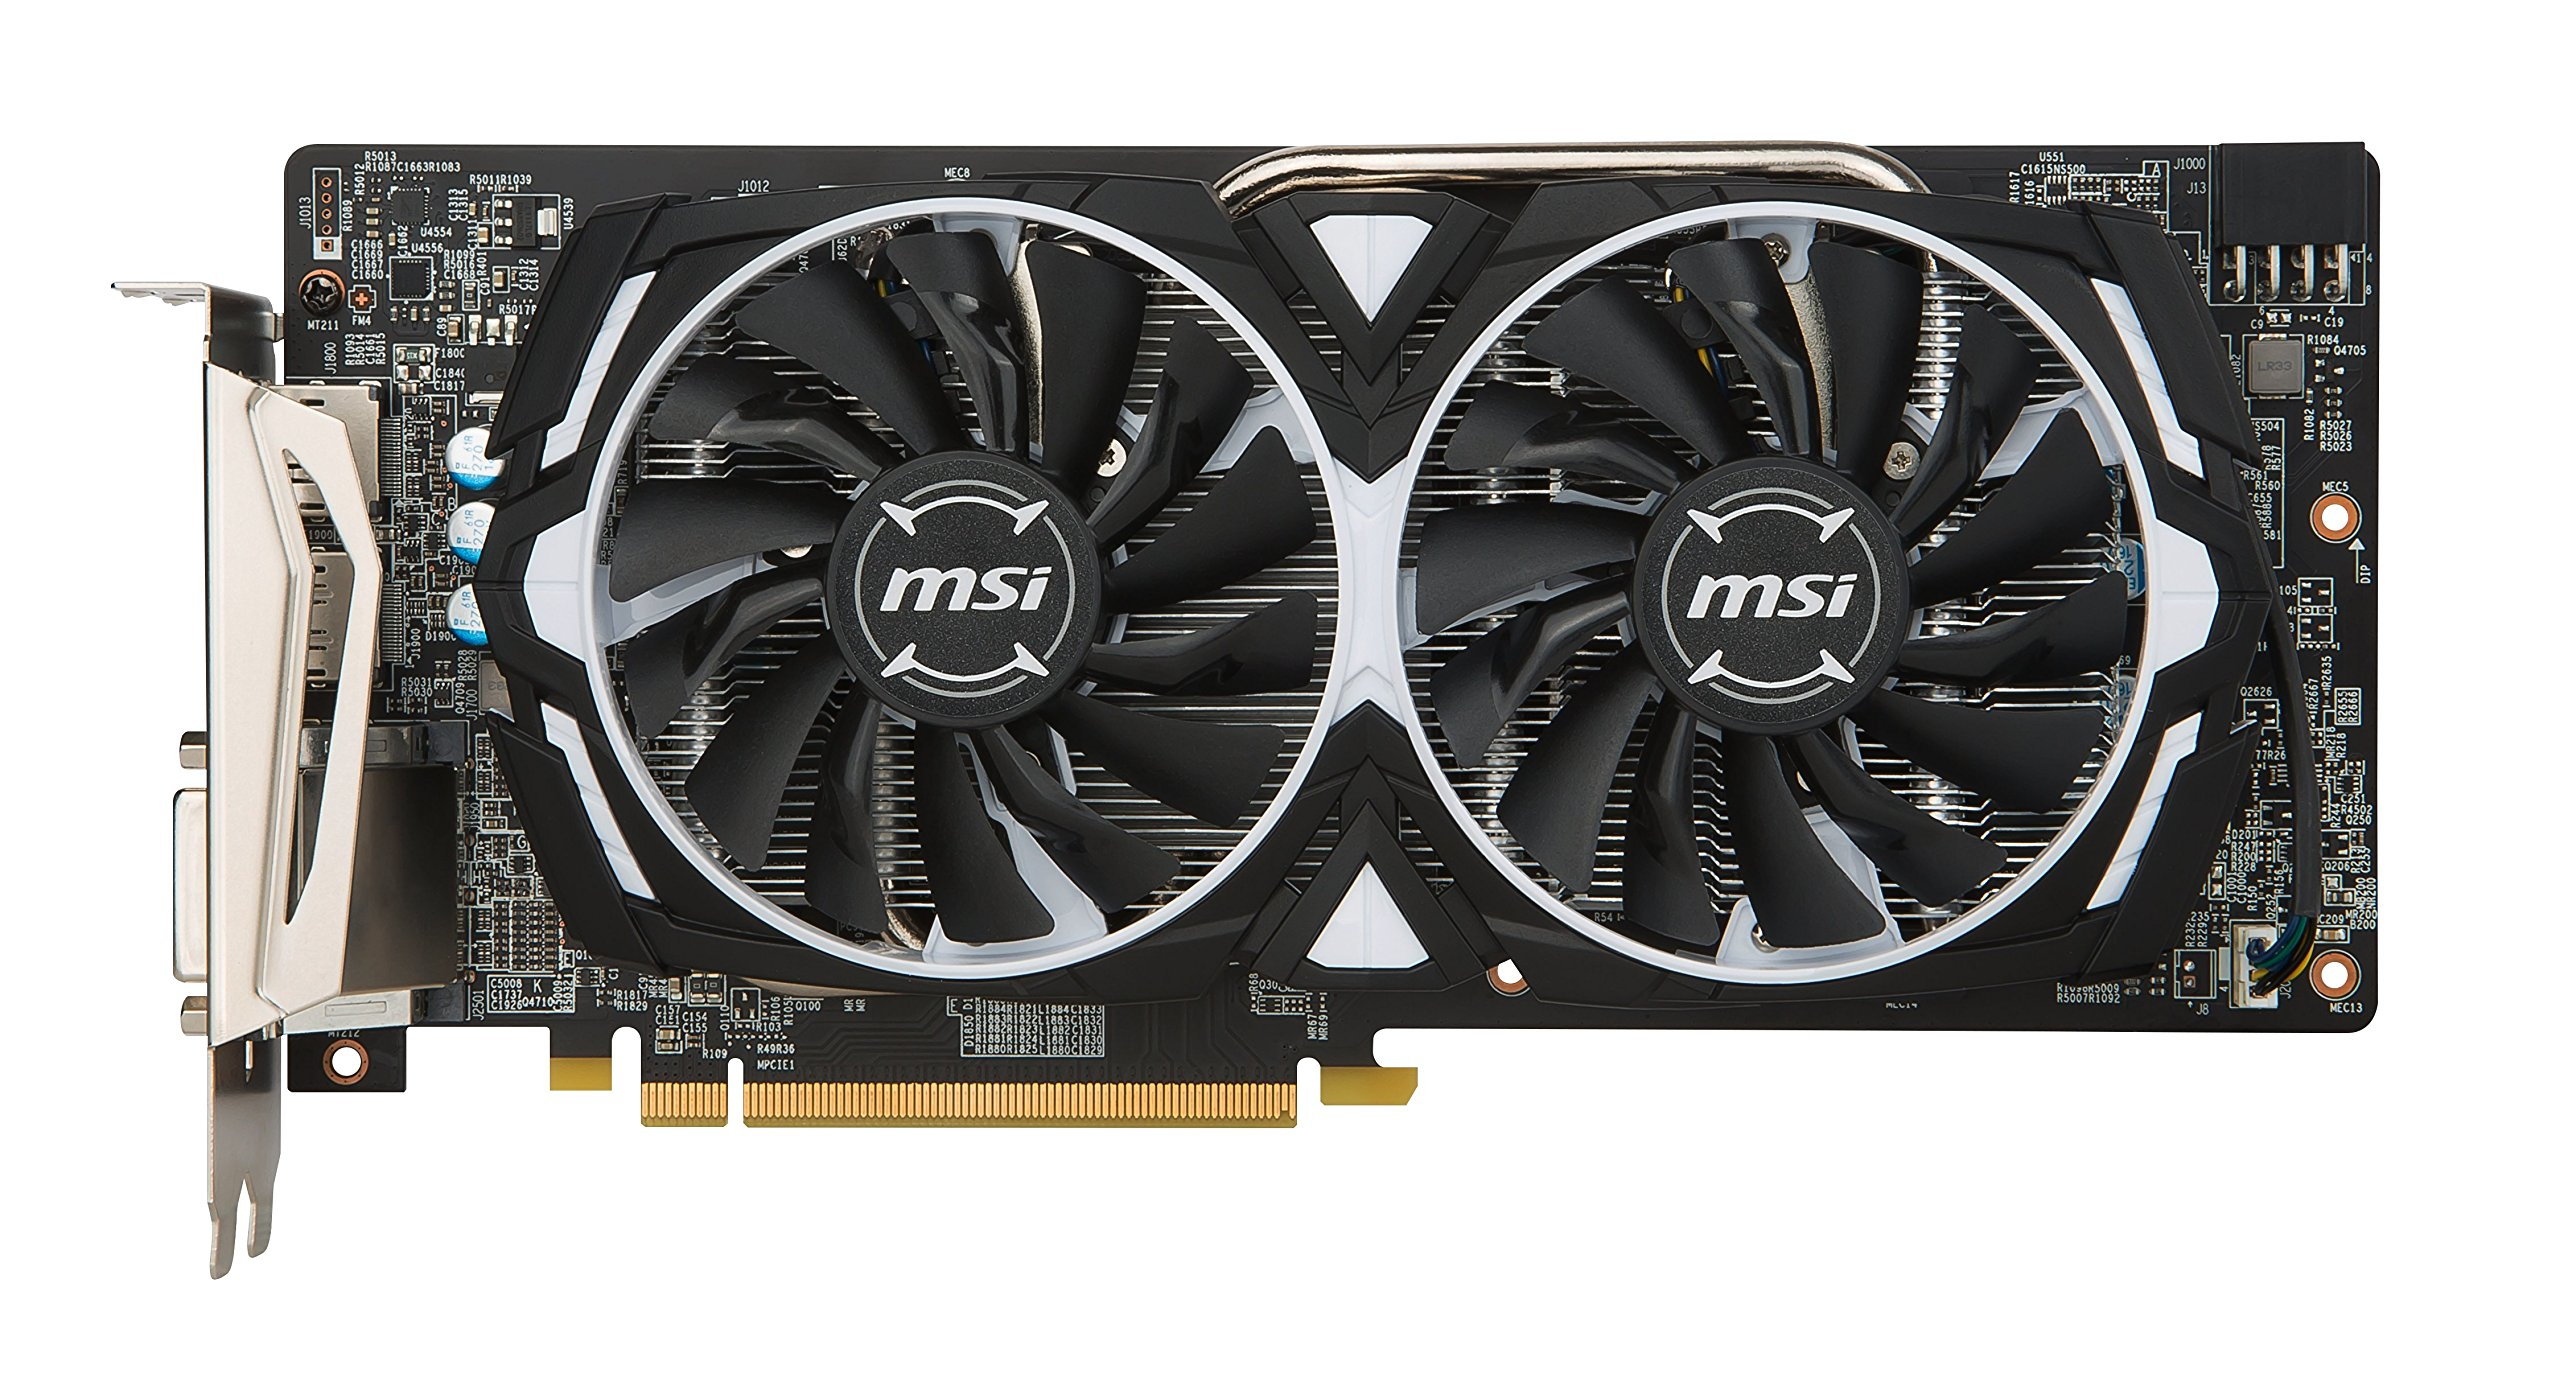 MSI VGA Graphic Cards RX 580 Armor 8G OC by MSI (Image #3)